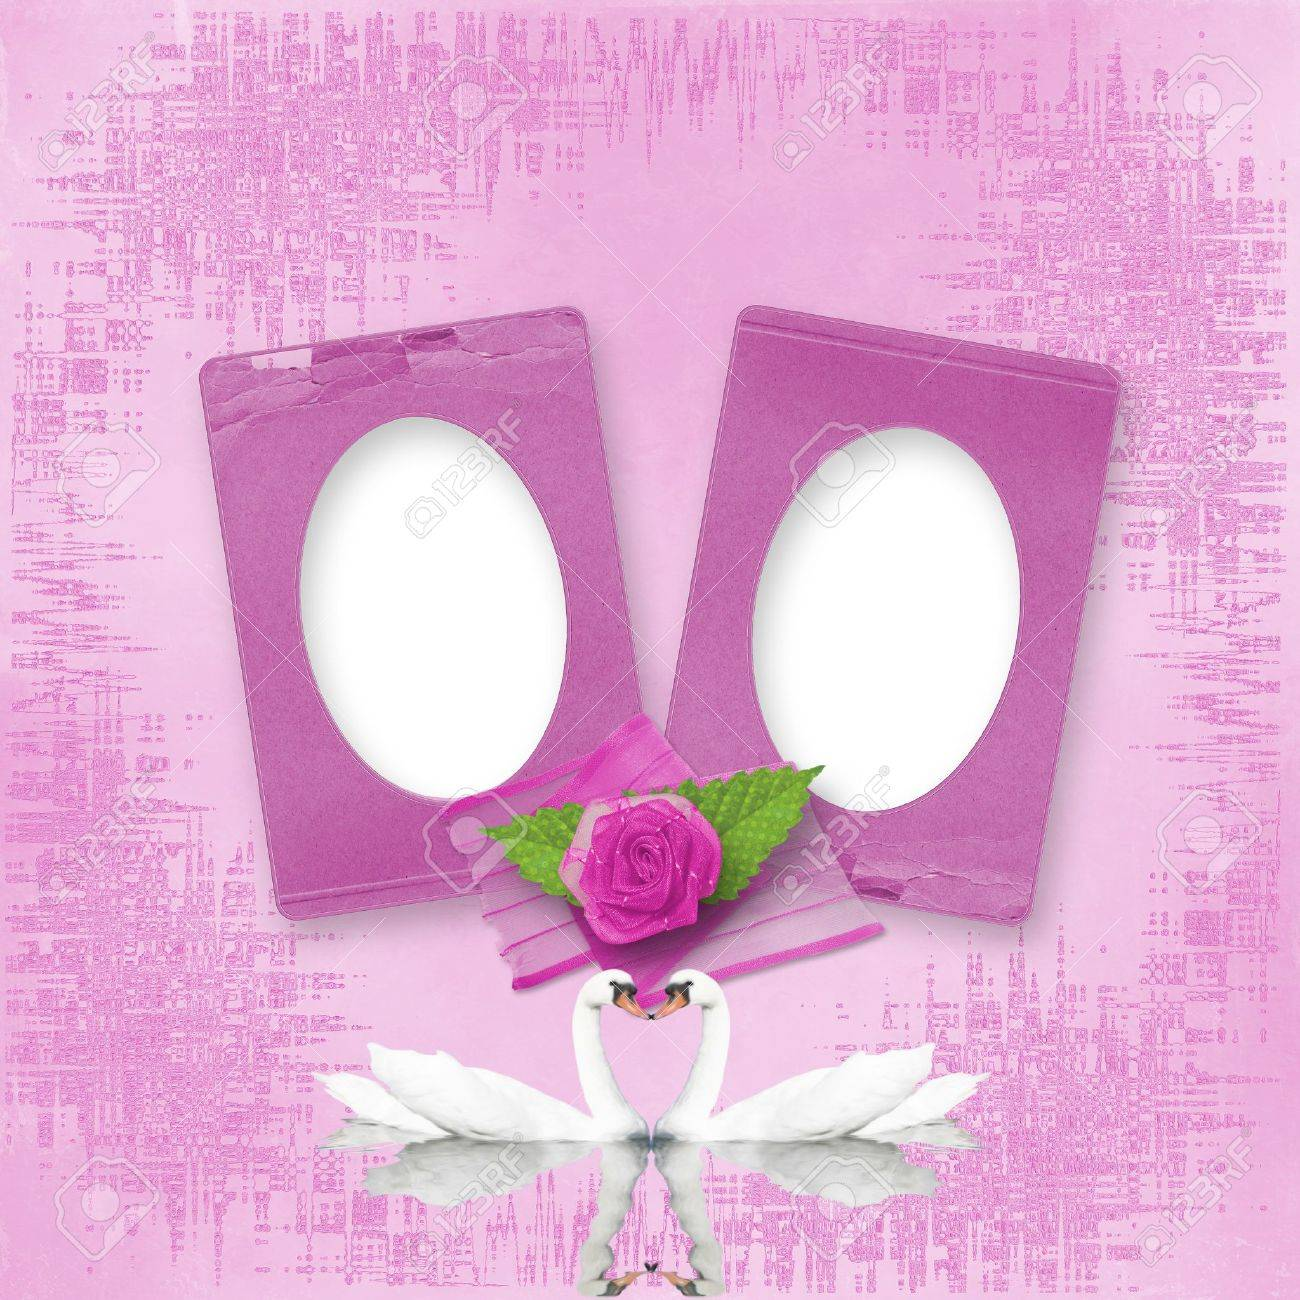 greeting card to wedding with frames on the pink background stock photo - Wedding Picture Frames